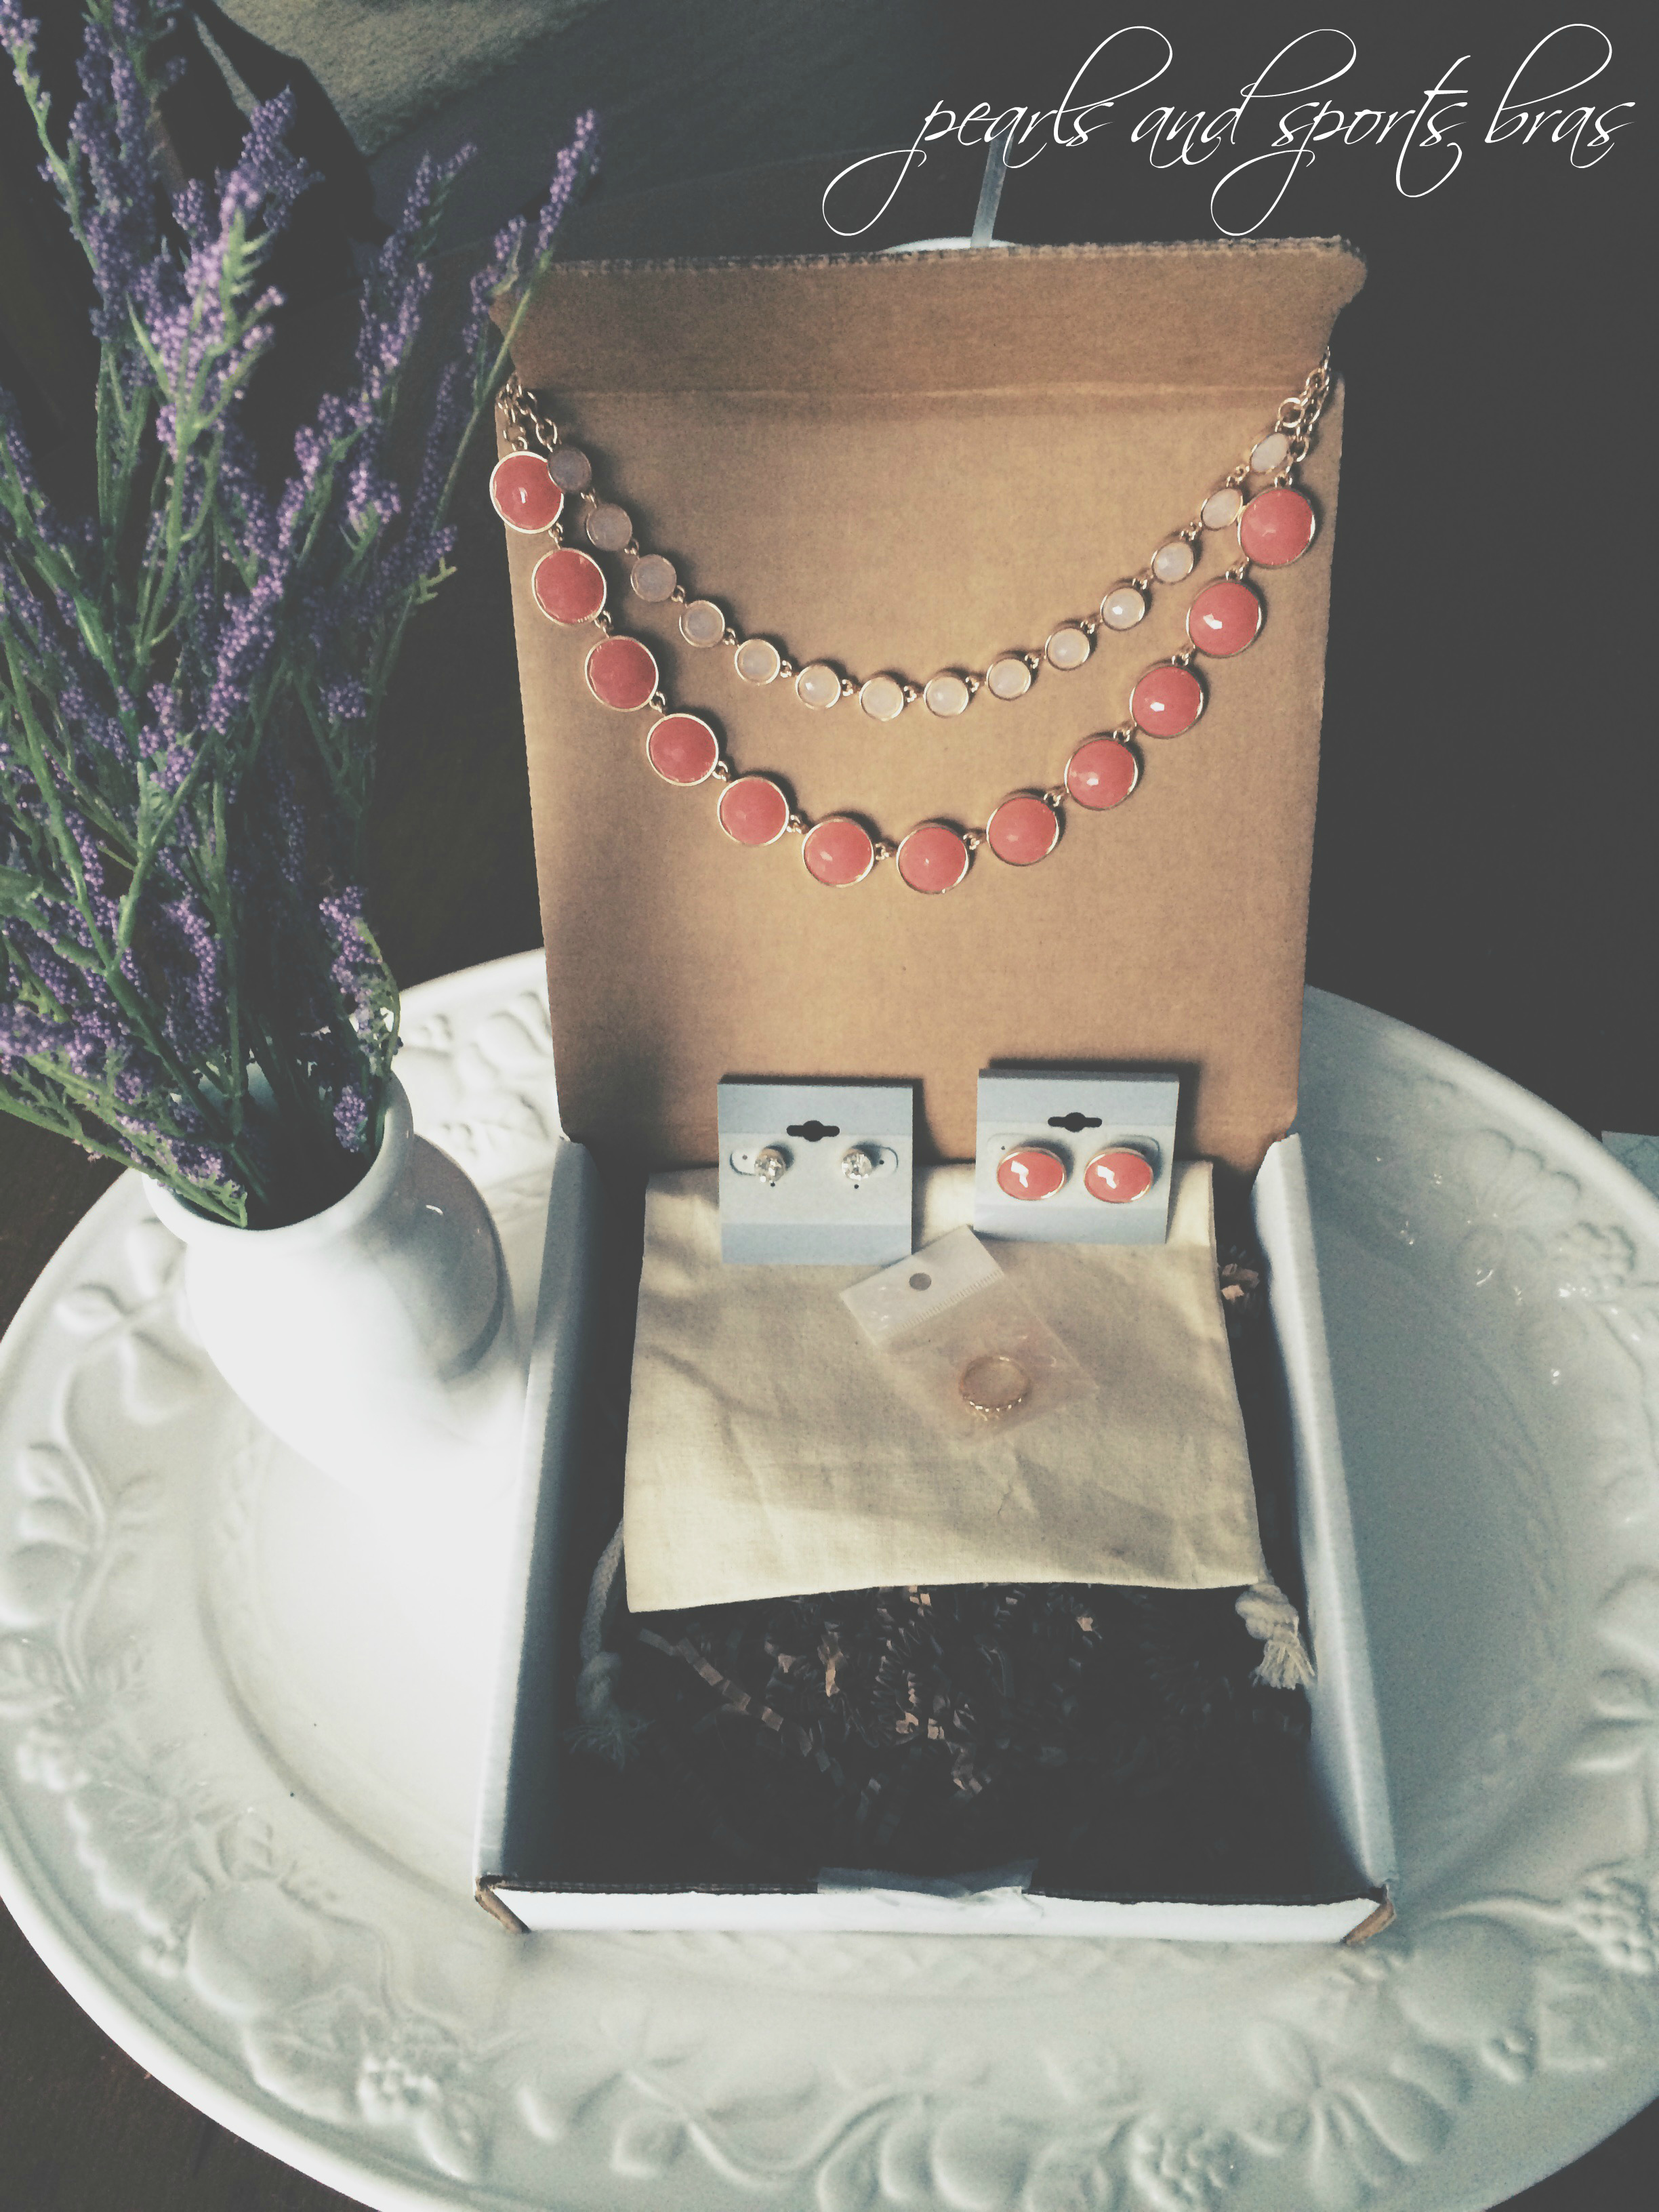 Olia Box February Review Pearls and Sports Bras